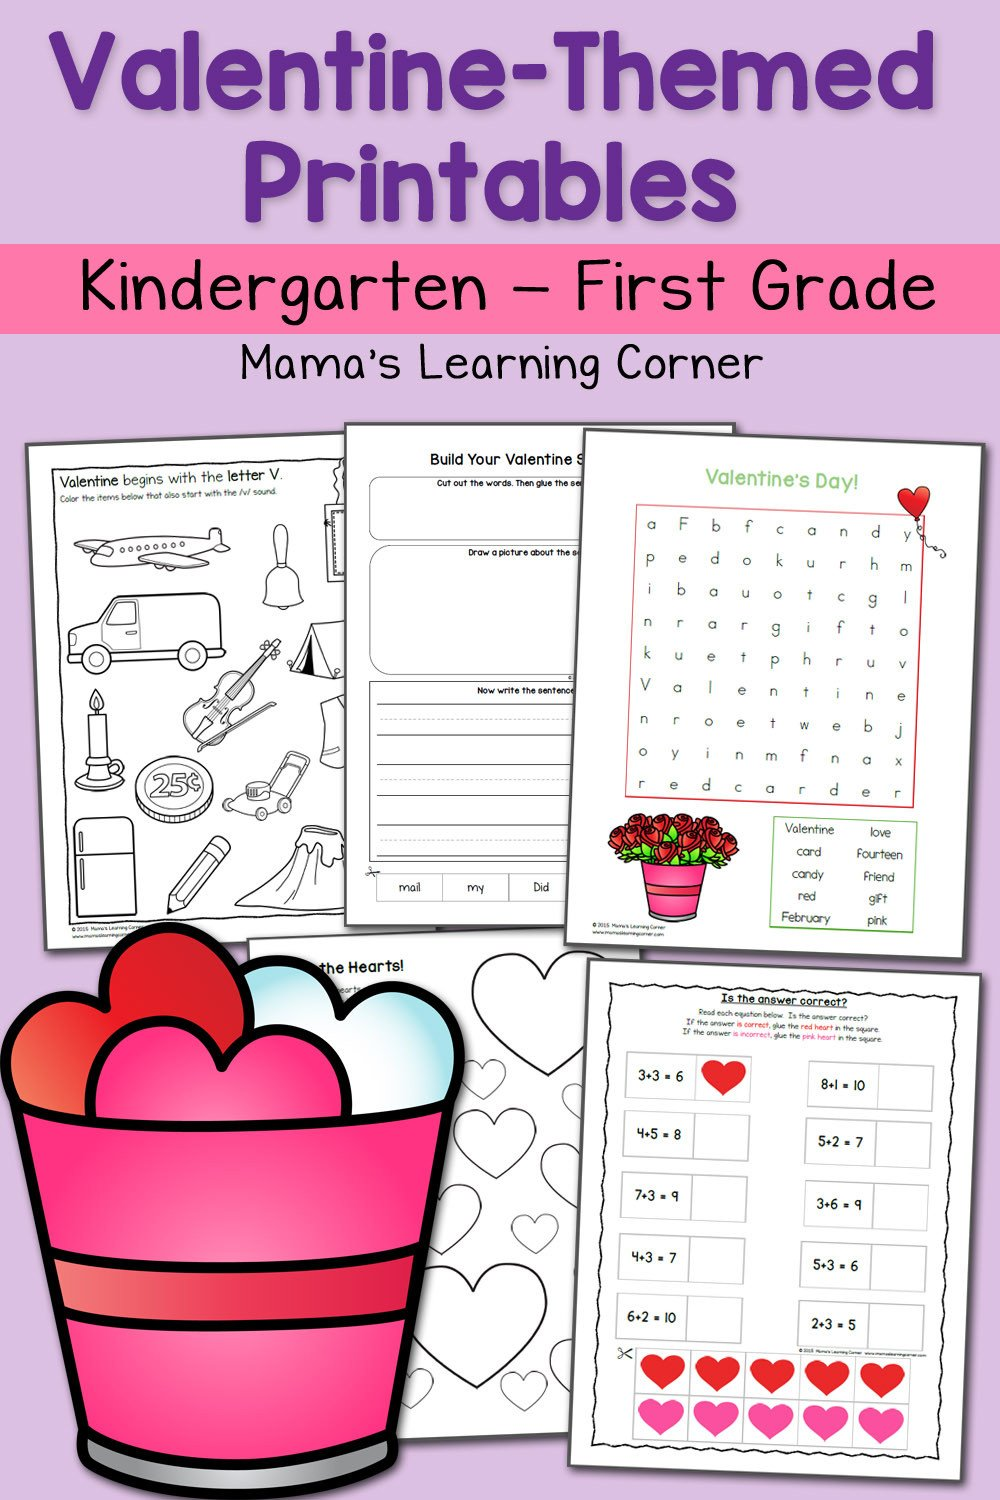 Valentines Day Kindergarten Worksheets Valentine Worksheets for Kindergarten and First Grade